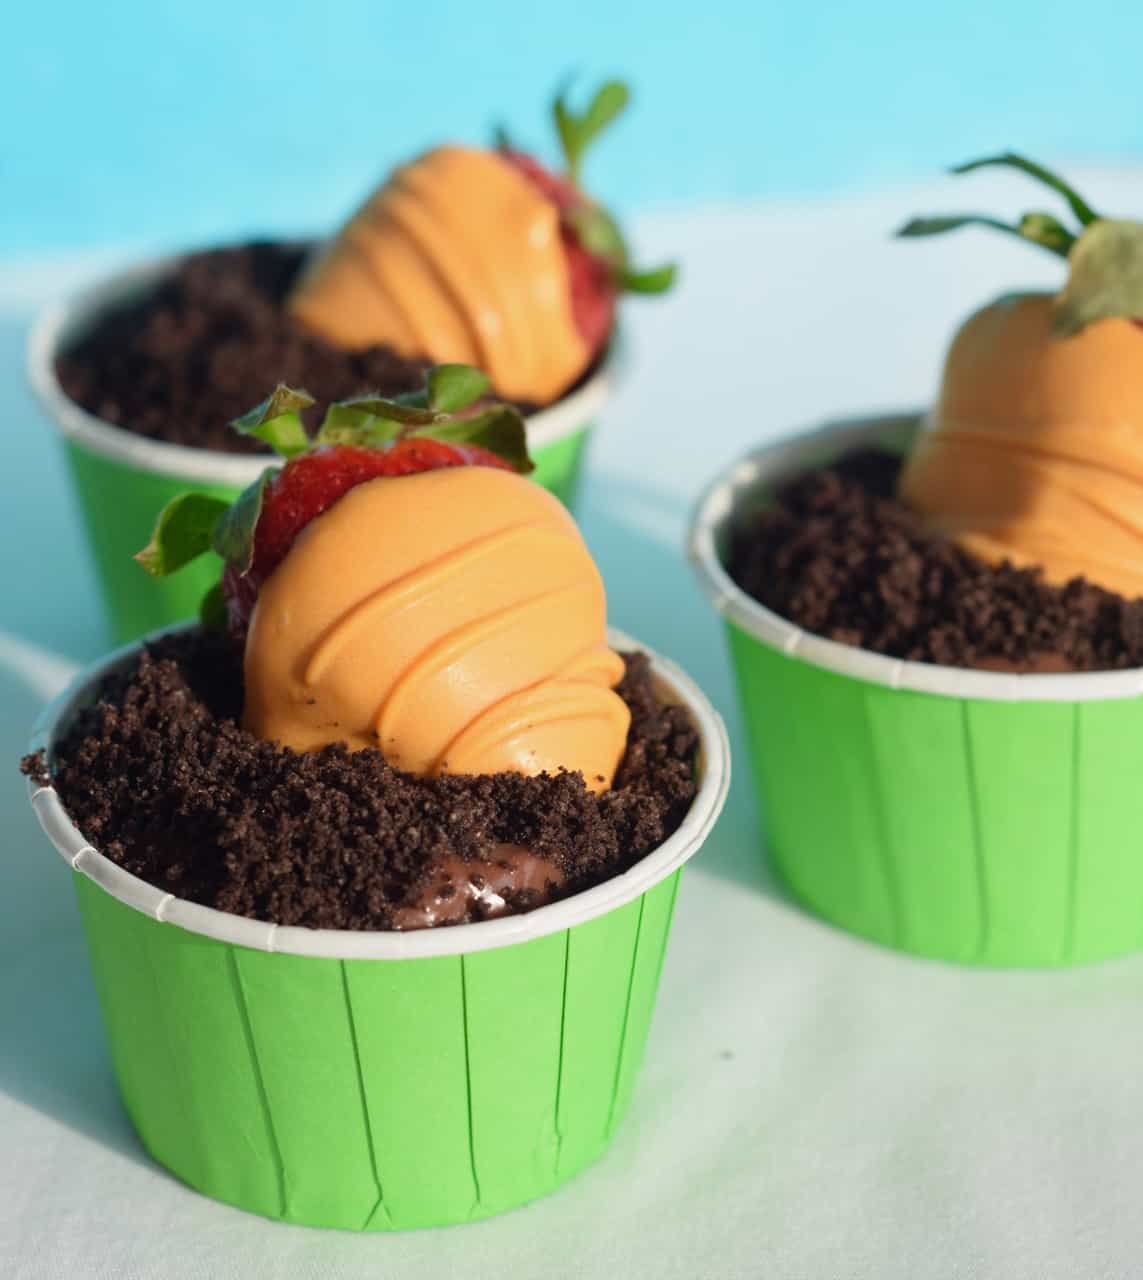 Orange candy coating fresh strawberries as carrots nestled in chocolate pudding and Oreos